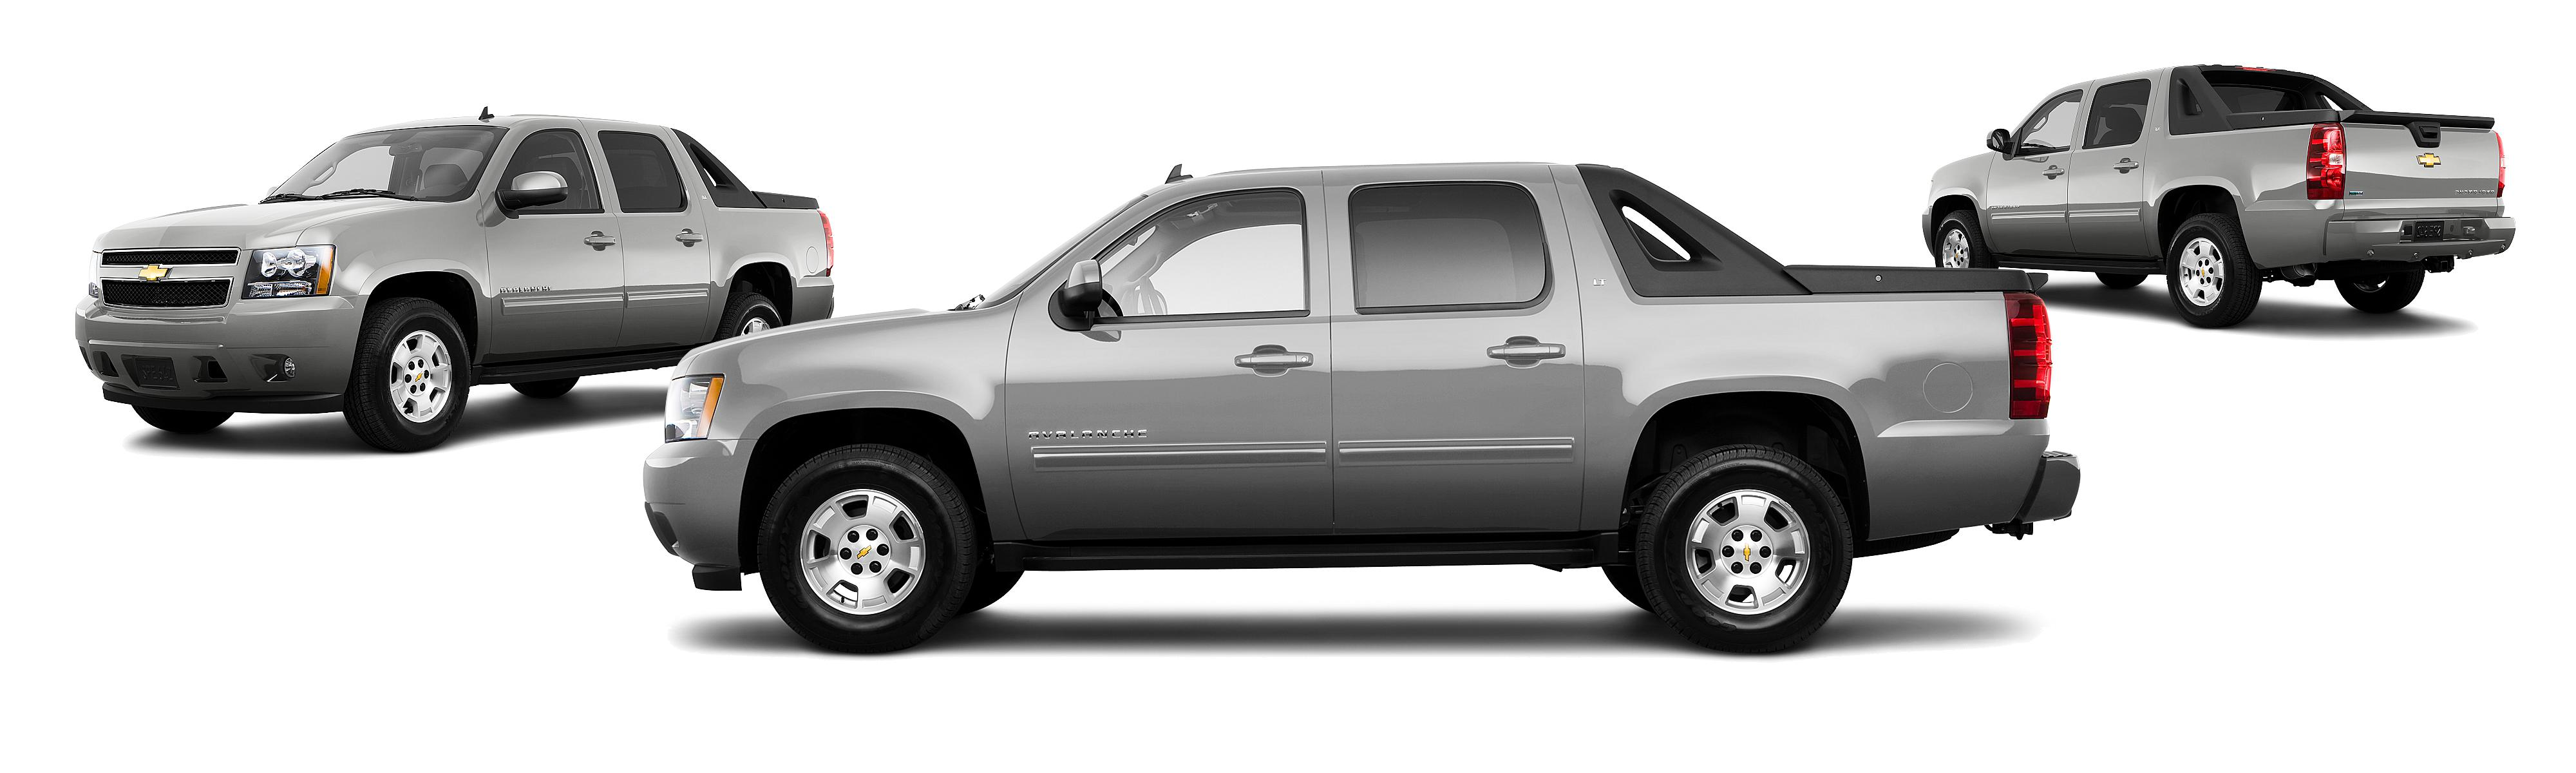 2010 Chevrolet Avalanche 4x2 LTZ 4dr Pickup Research GrooveCar